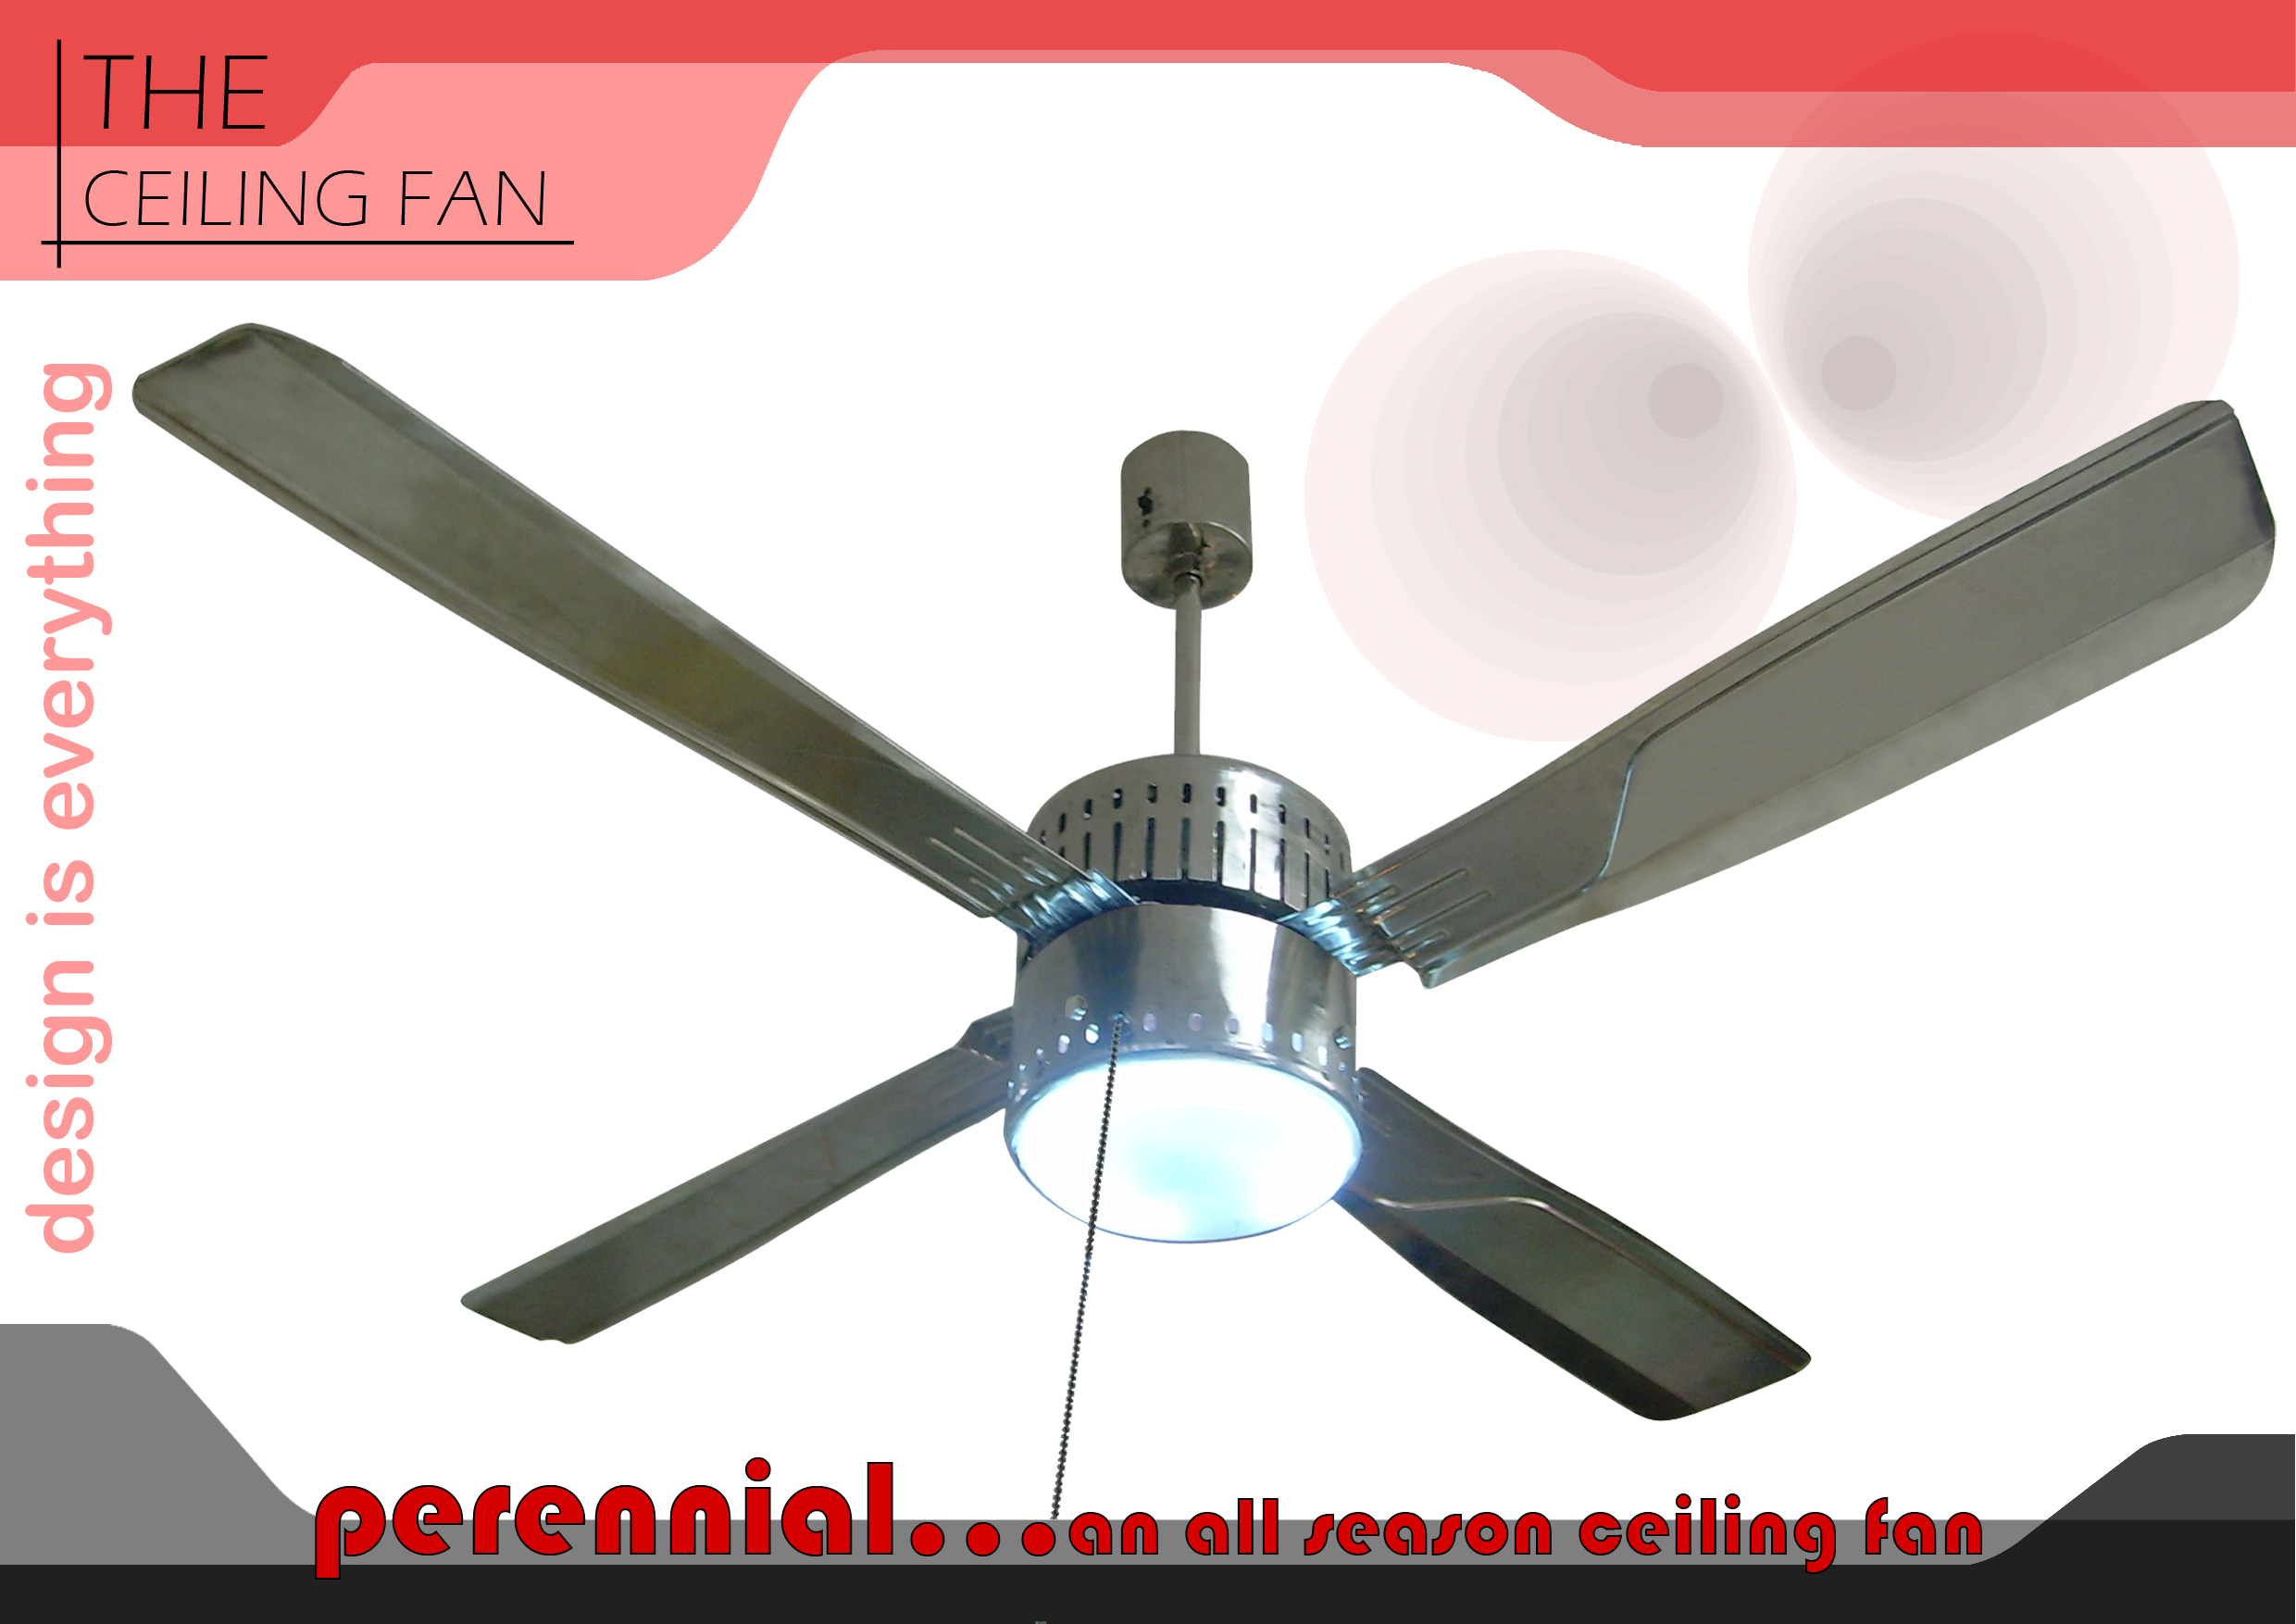 Inspirational Ceiling Fan Direction In Winter : Interior Design and Home Inspiration : ihomedge.com